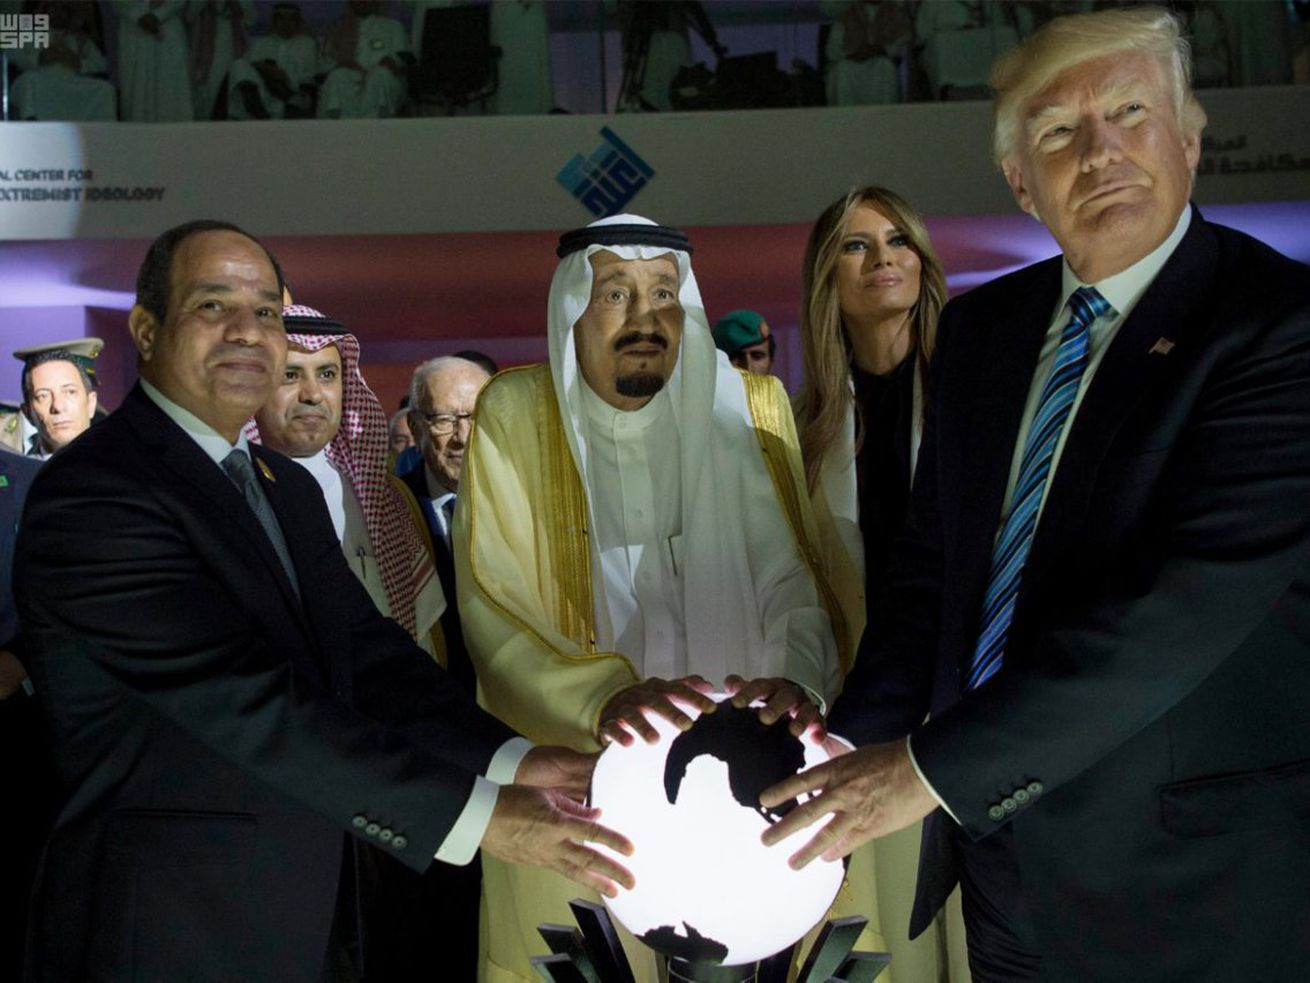 US President Donald Trump, Saudi King Salman bin Abdulaziz, and Egyptian President Abdel Fattah el-Sisi holding a glowing orb in a darkened room in Saudi Arabia.